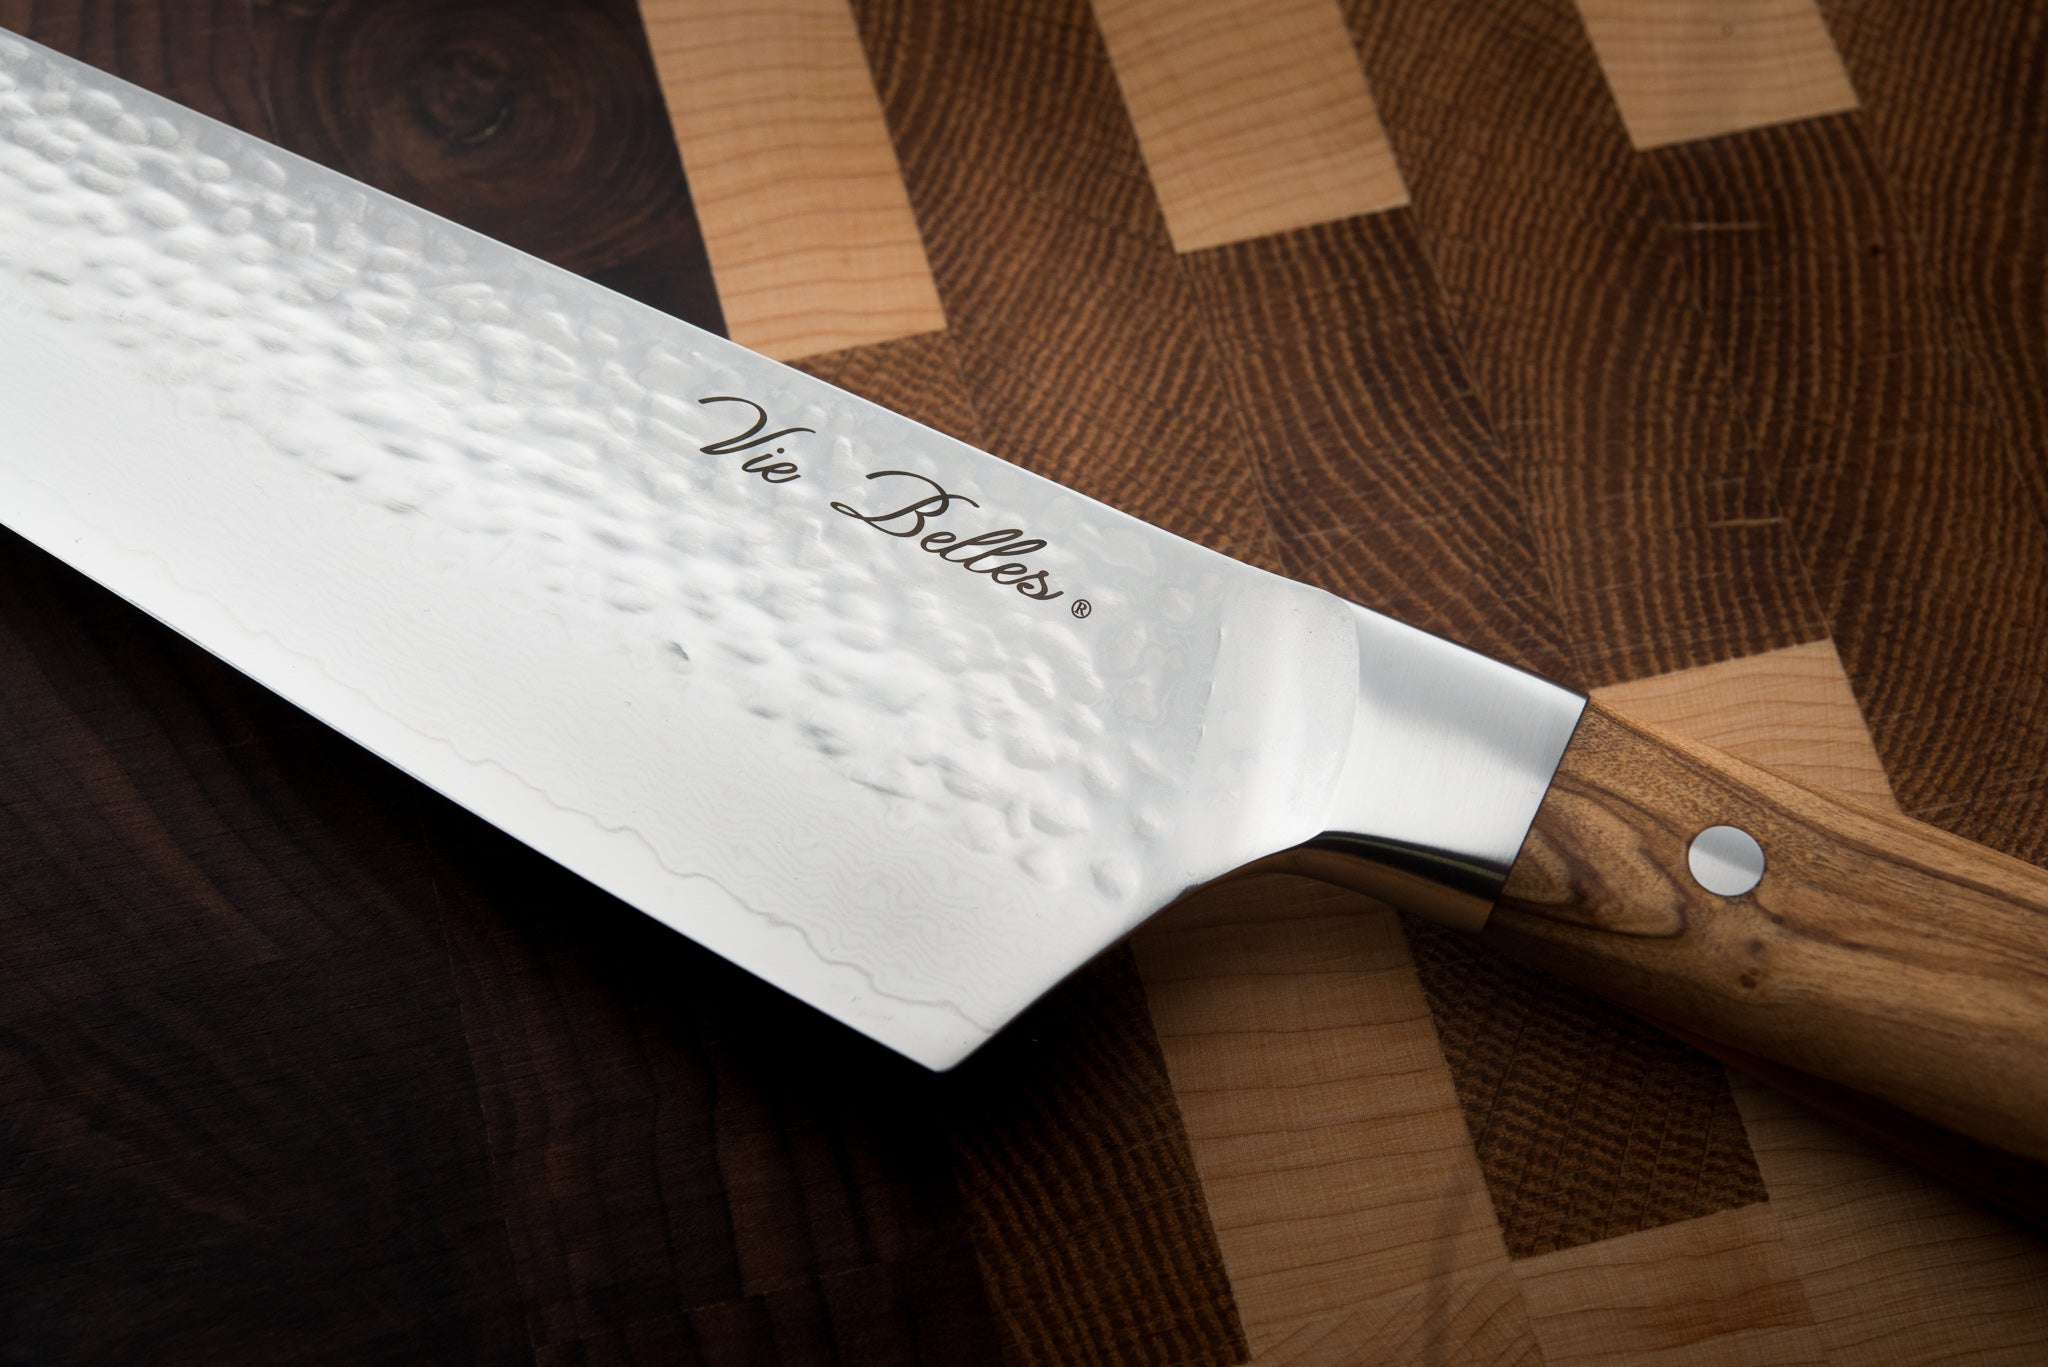 Vie Belles Pro Chef's Knife Close Up